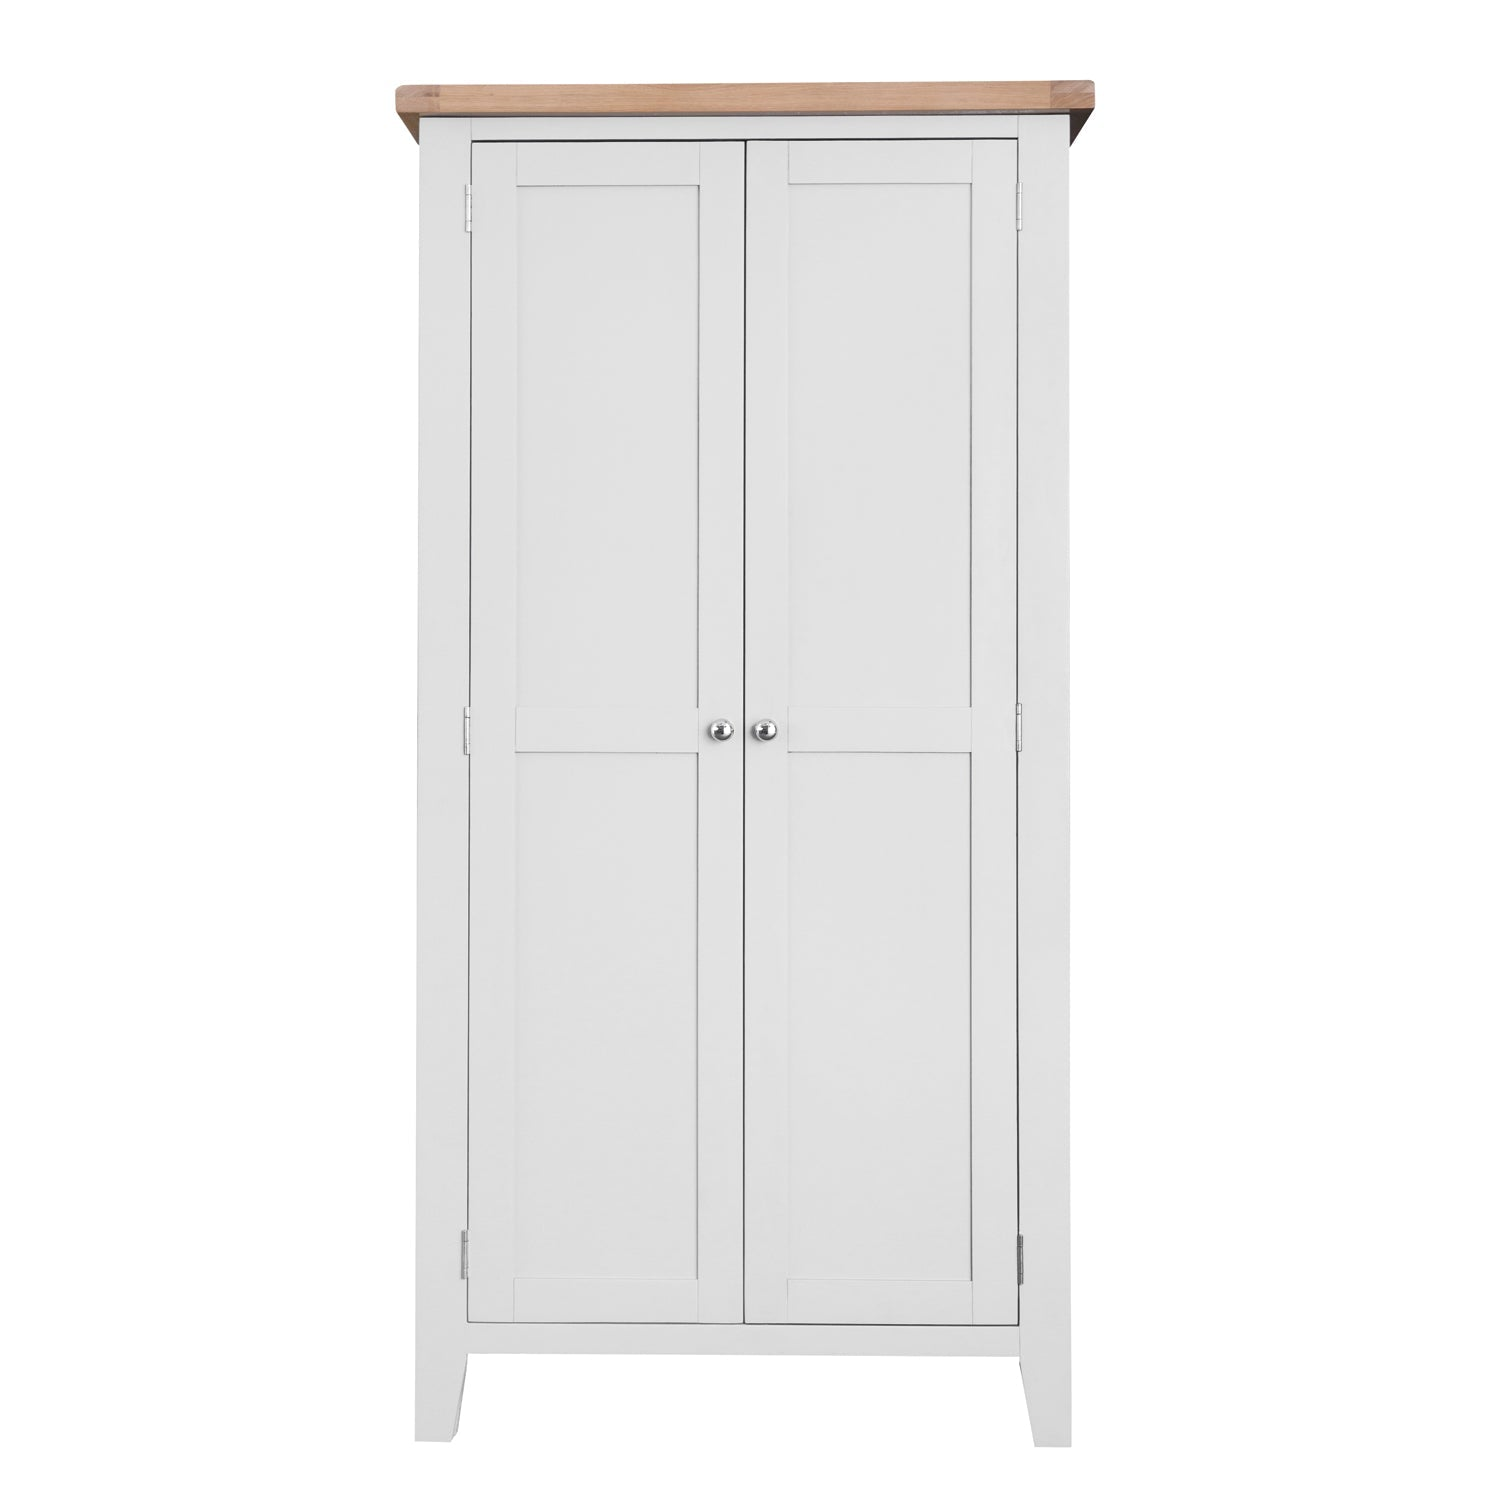 Lavenham White Painted & Oak Wardrobe - Full Hanging